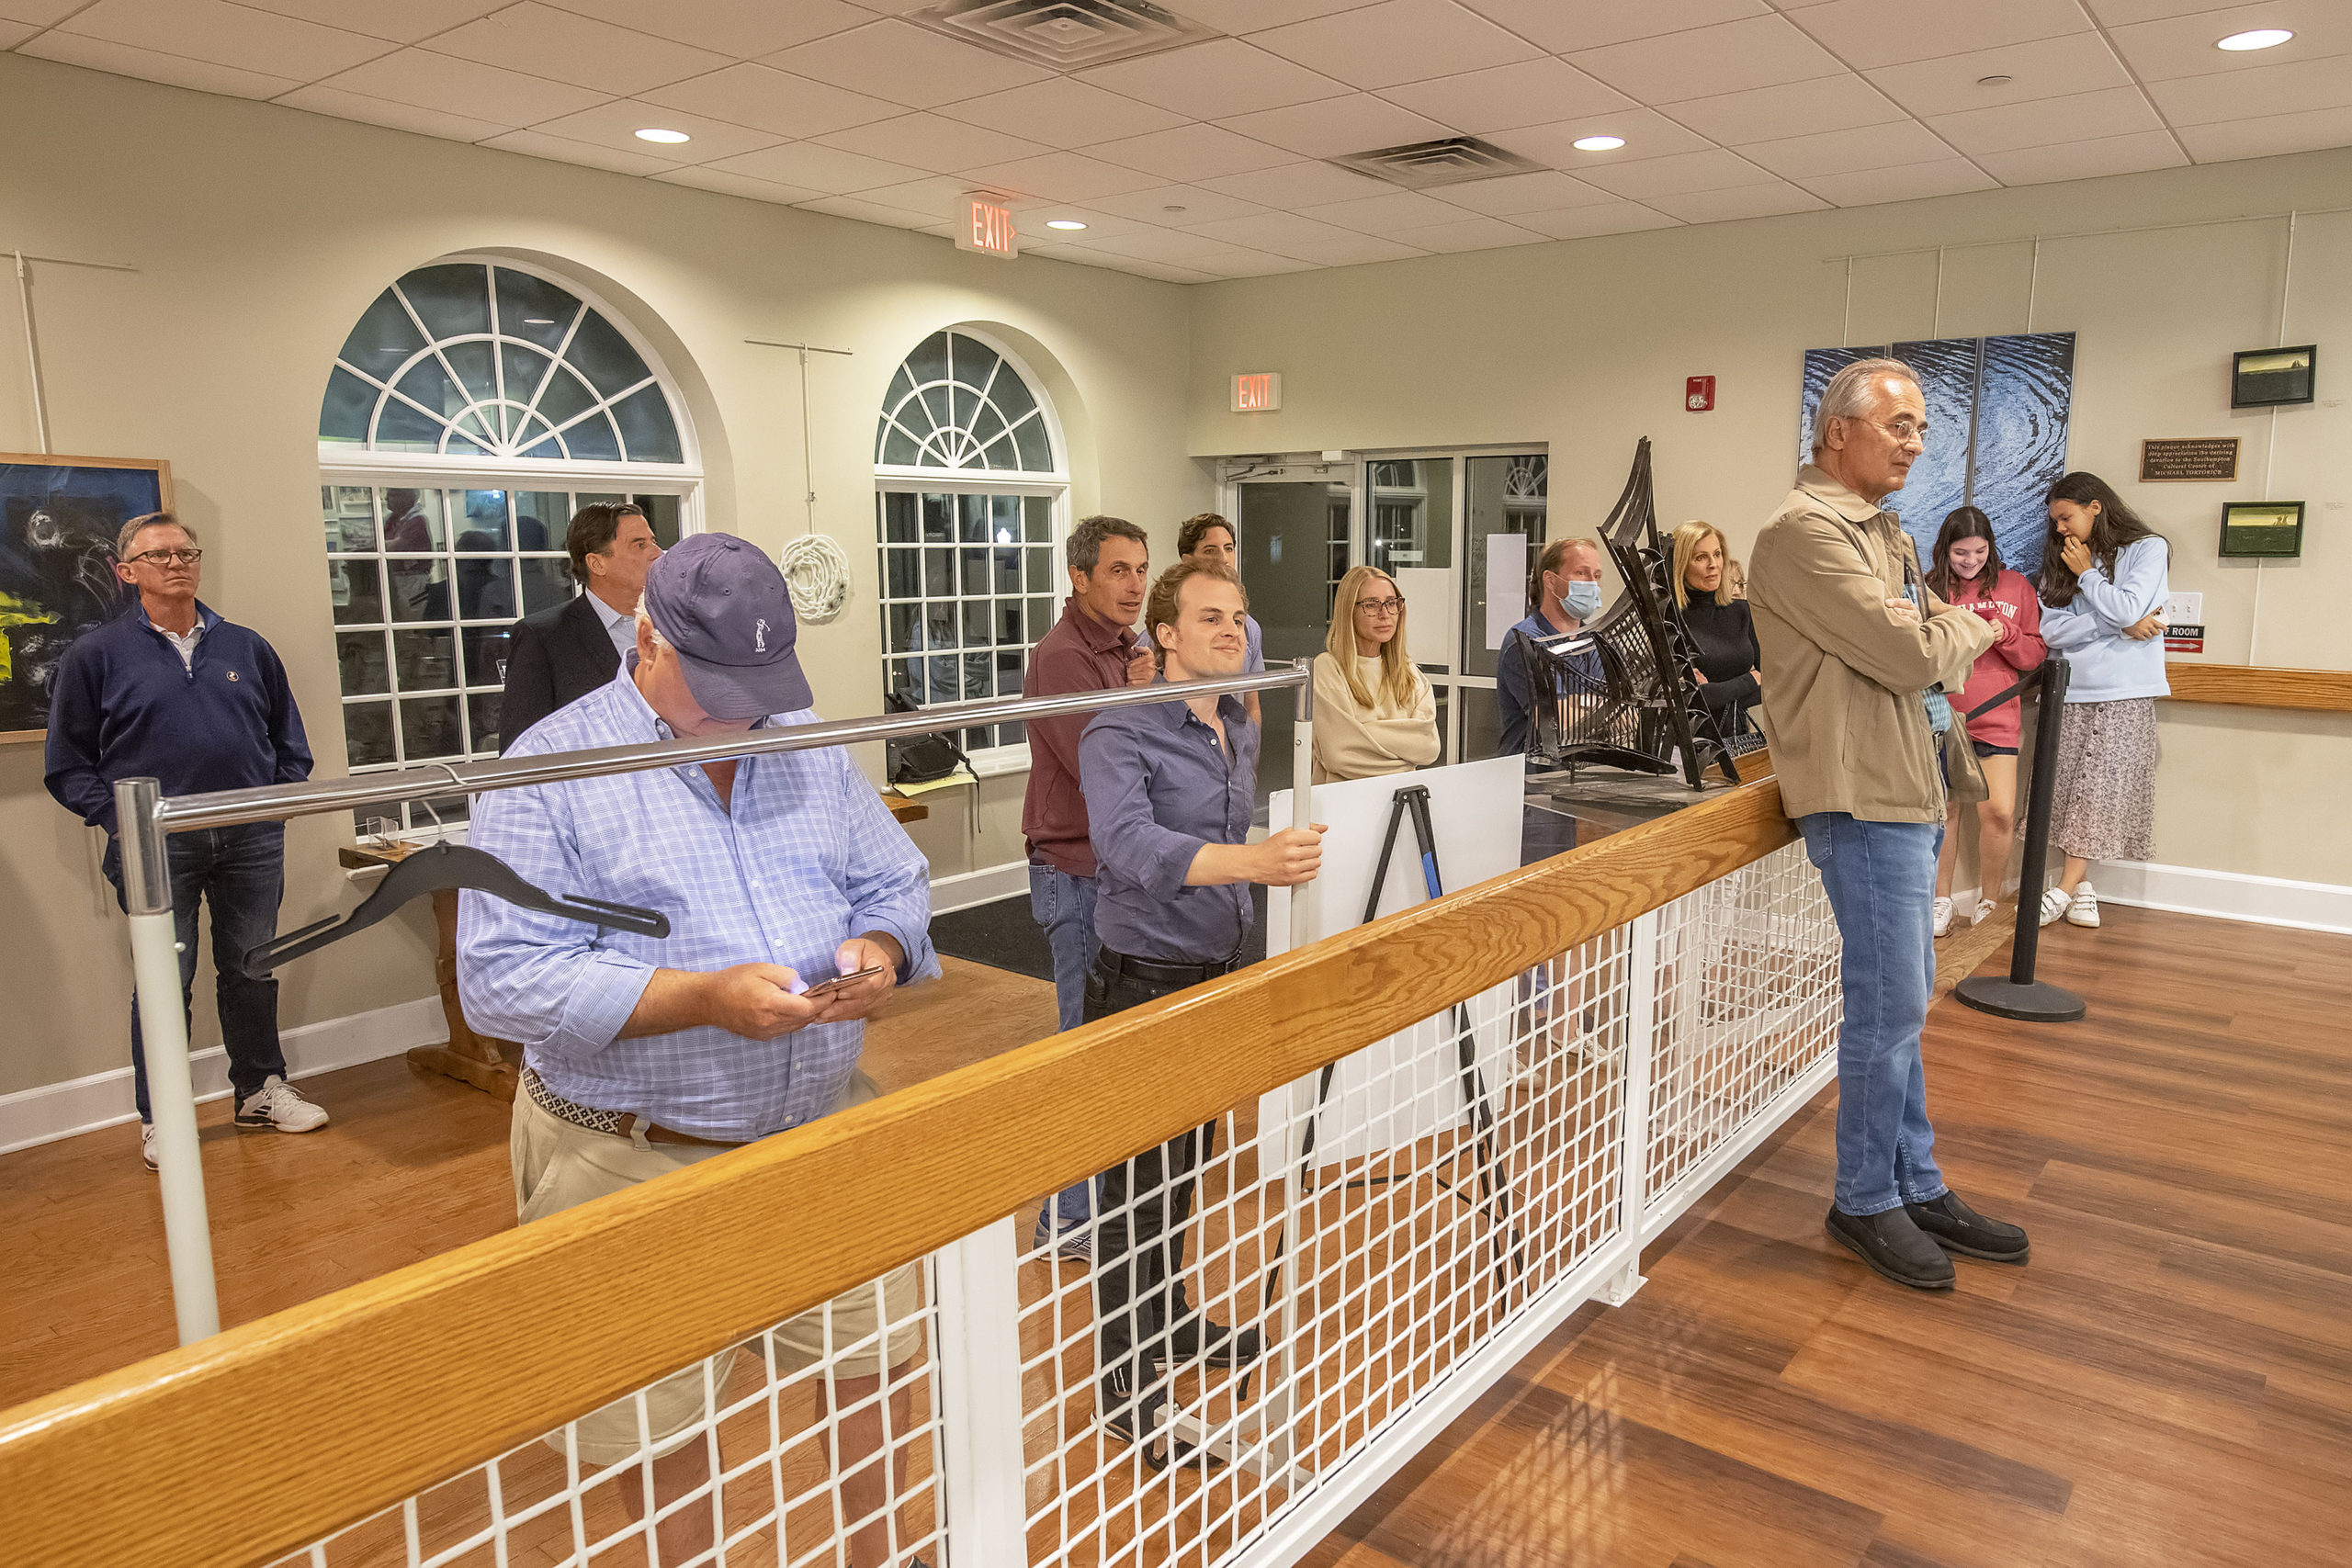 A gallery of interested persons watches from outside the main room as the vote count from each of the voting machines is tabulated during the 2021 Southampton Village Mayoral election at the Southampton Cultural Center on Friday night. MICHAEL HELLER